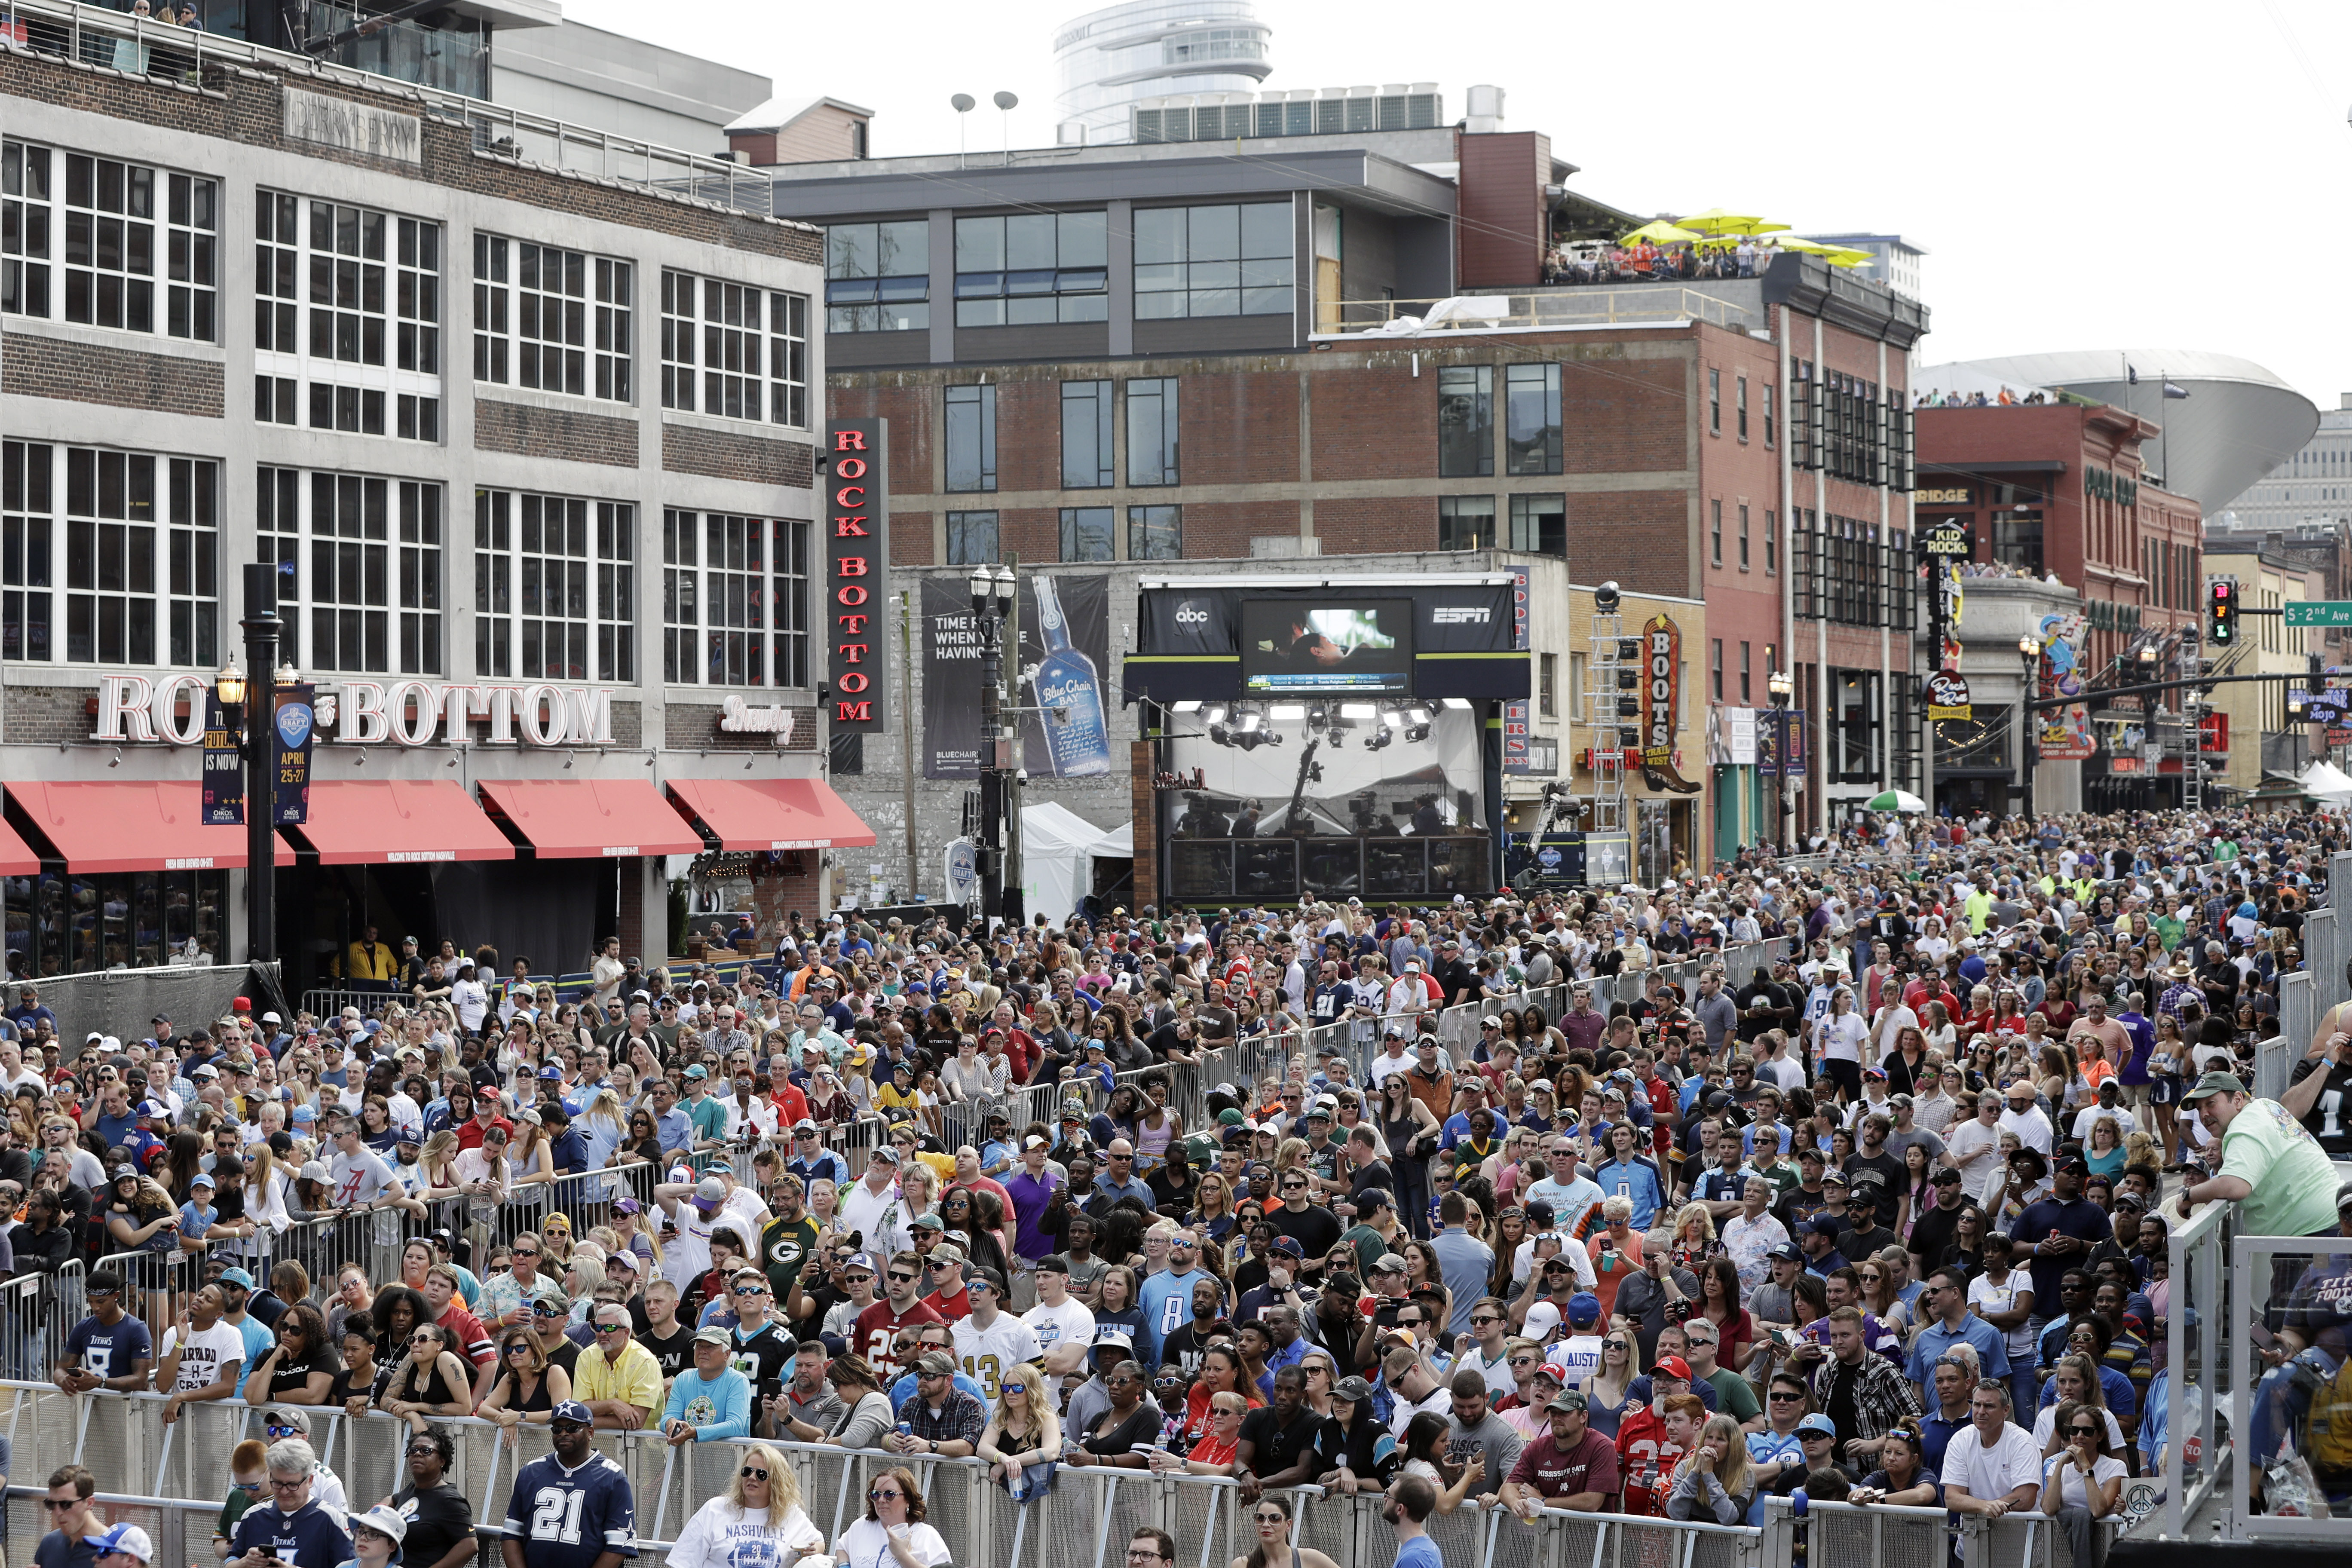 Downtown Nashville is blocked off for the NFL draft